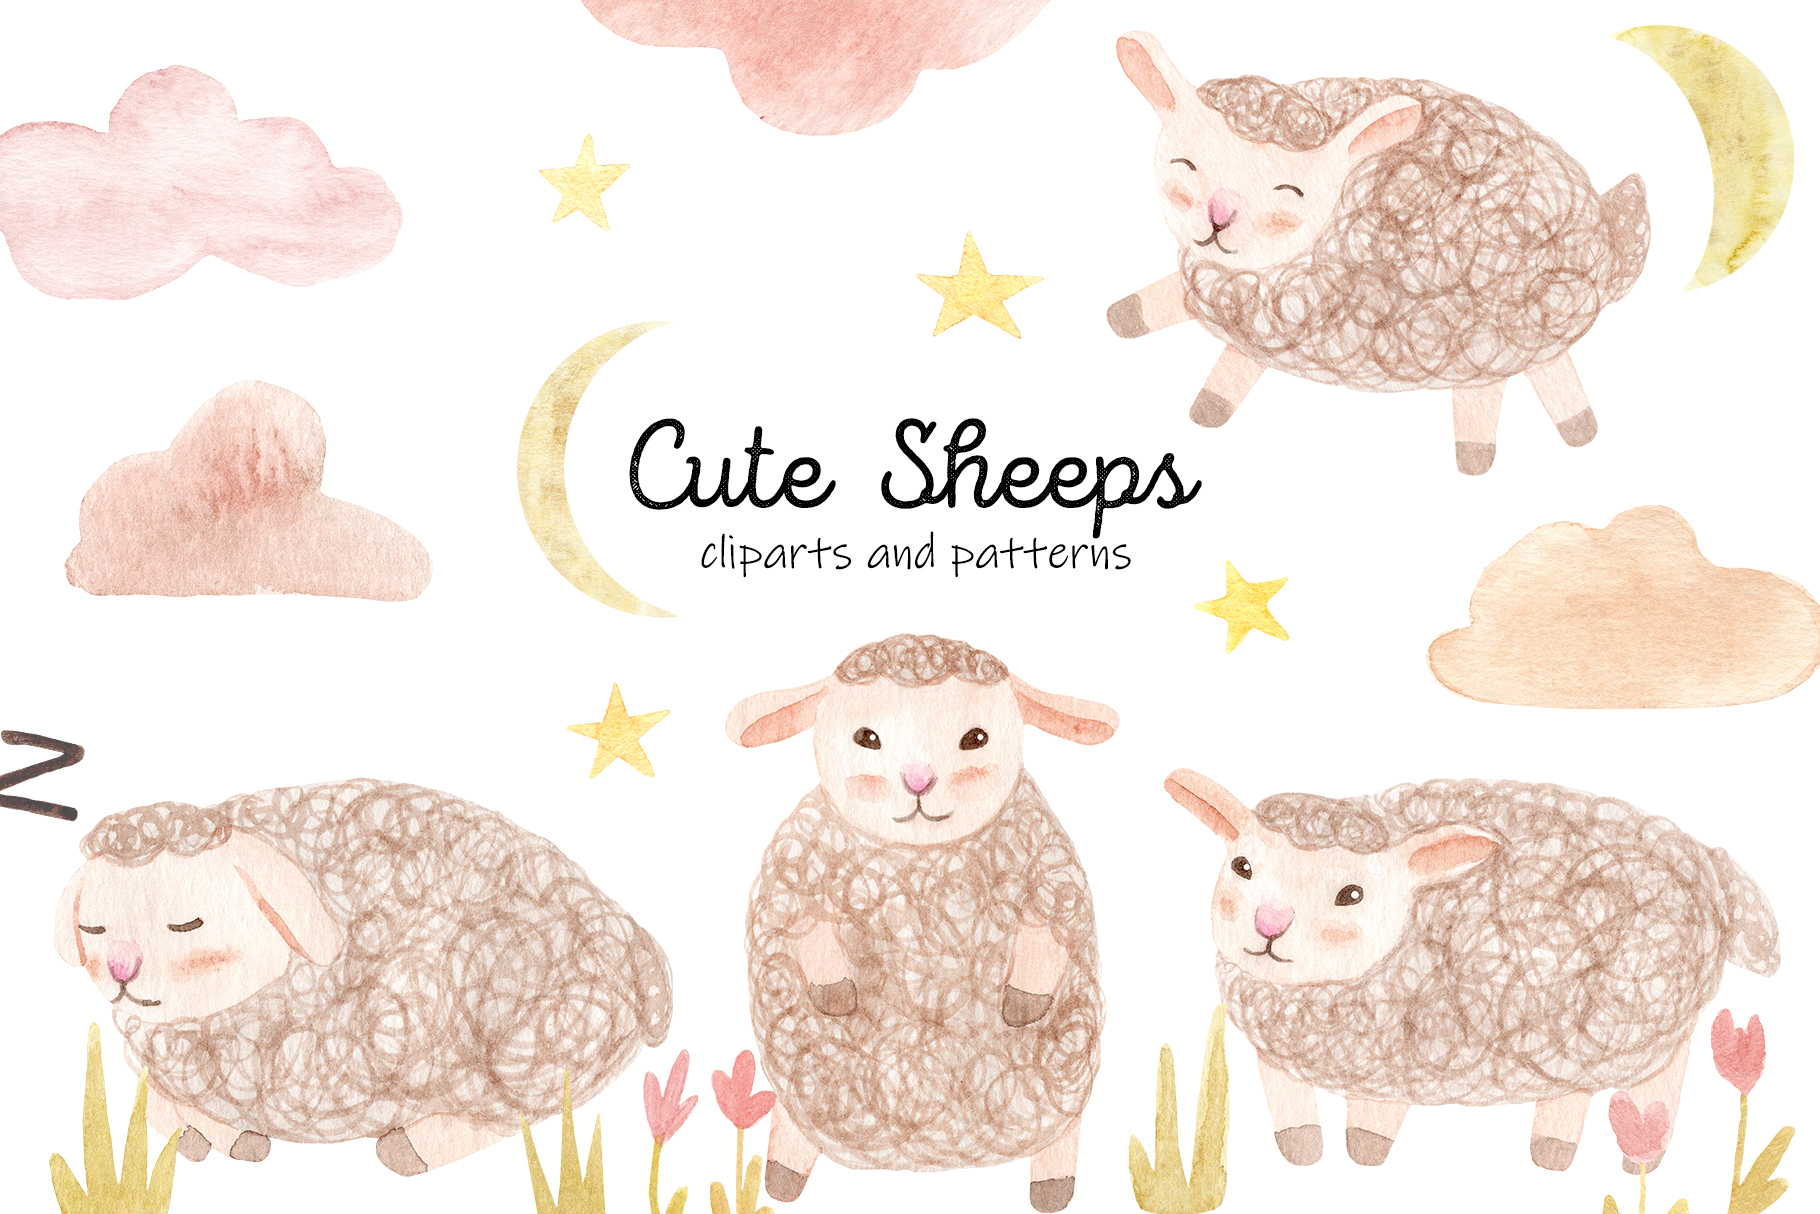 Download Free Cute Watercolor Sheeps Seamless Pattern Graphic By Slastick for Cricut Explore, Silhouette and other cutting machines.